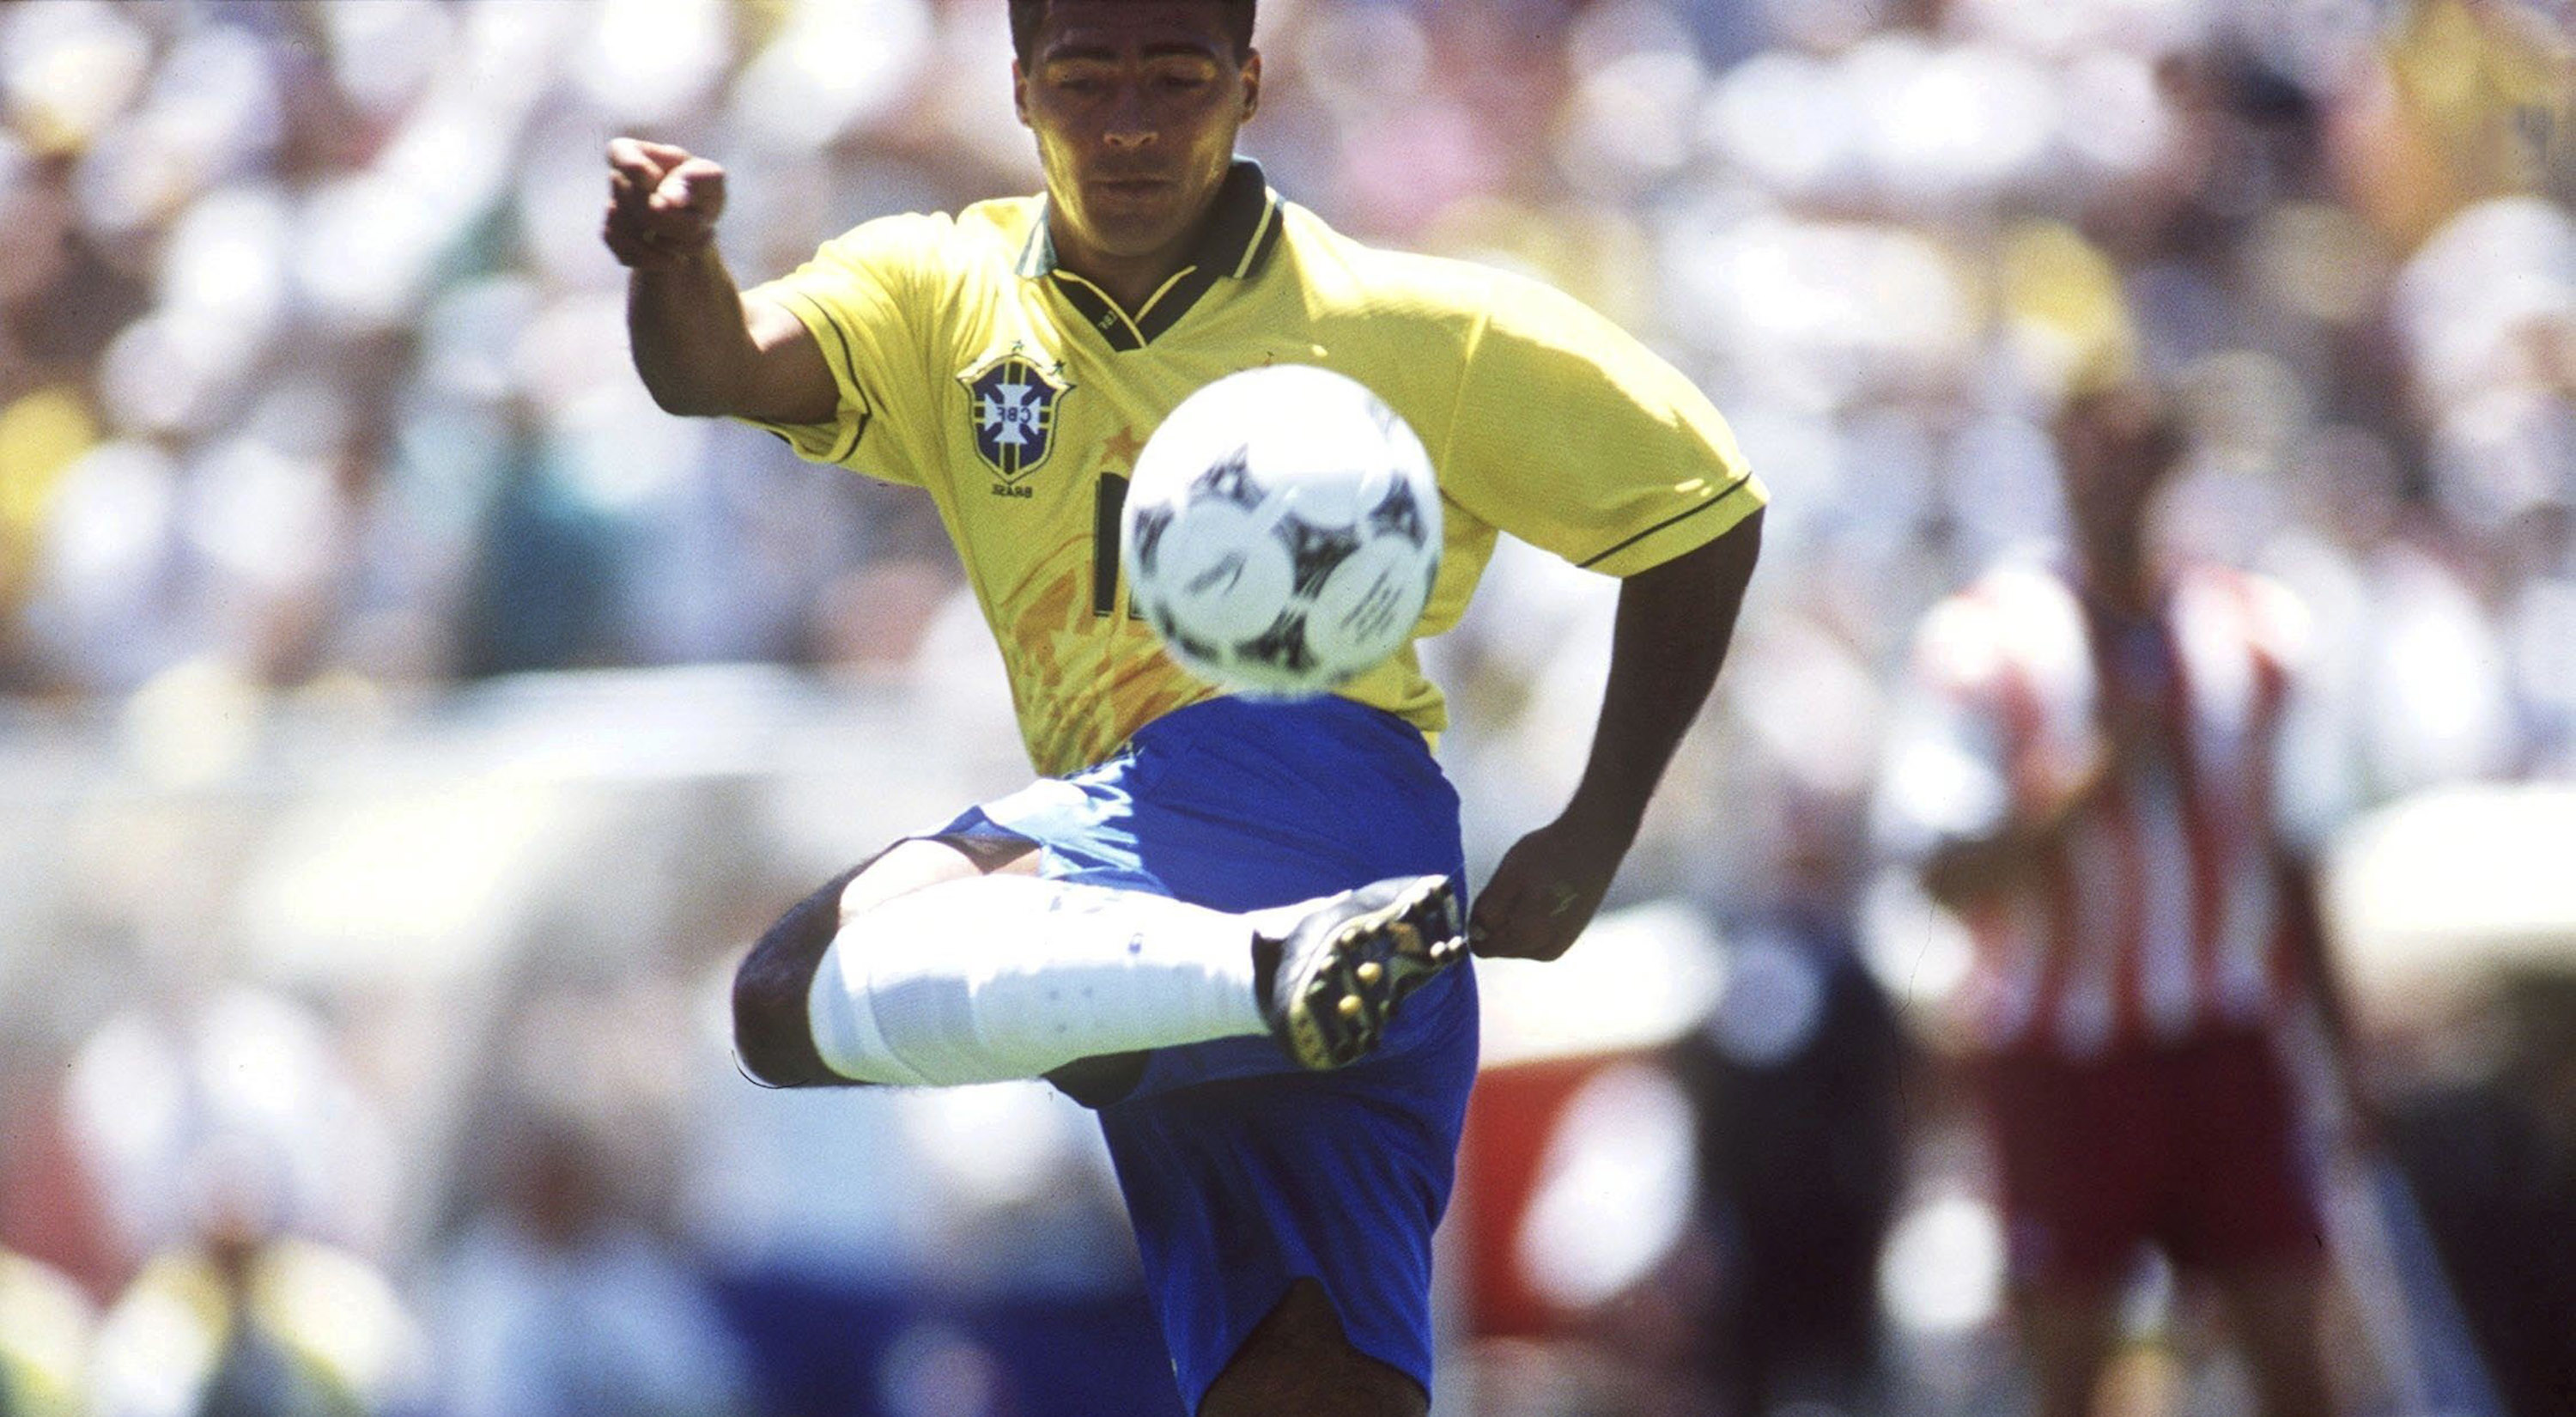 DALLAS, UNITED STATES - JULY 04: WM 1994, Dallas; BRASILIEN - USA 1:0 (BRA - USA) 1:0; ROMARIO/BRA (Photo by Michael Kunkel/Bongarts/Getty Images)